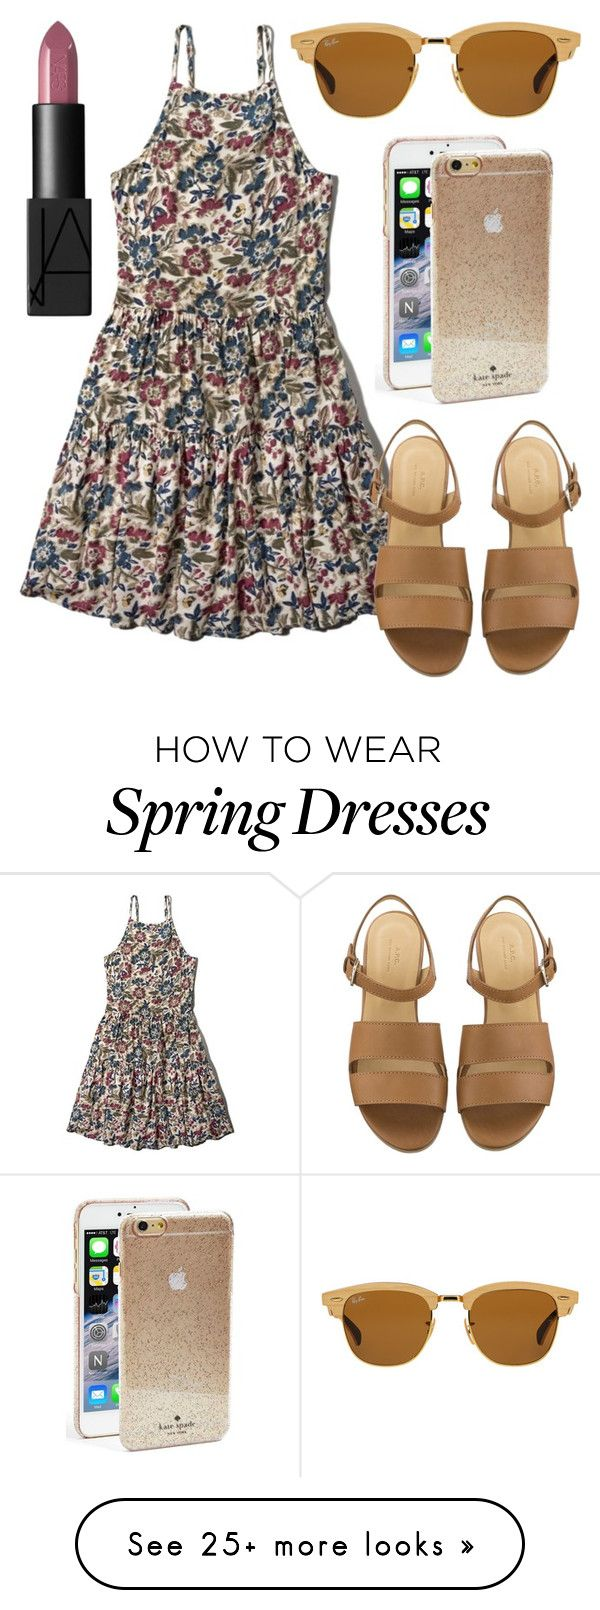 """Ready for Spring"" by kk-purpleprincess on Polyvore featuring Abercrombie & Fitch, Ray-Ban, Kate Spade, NARS Cosmetics, women's clothing, women's fashion, women, female, woman and misses"